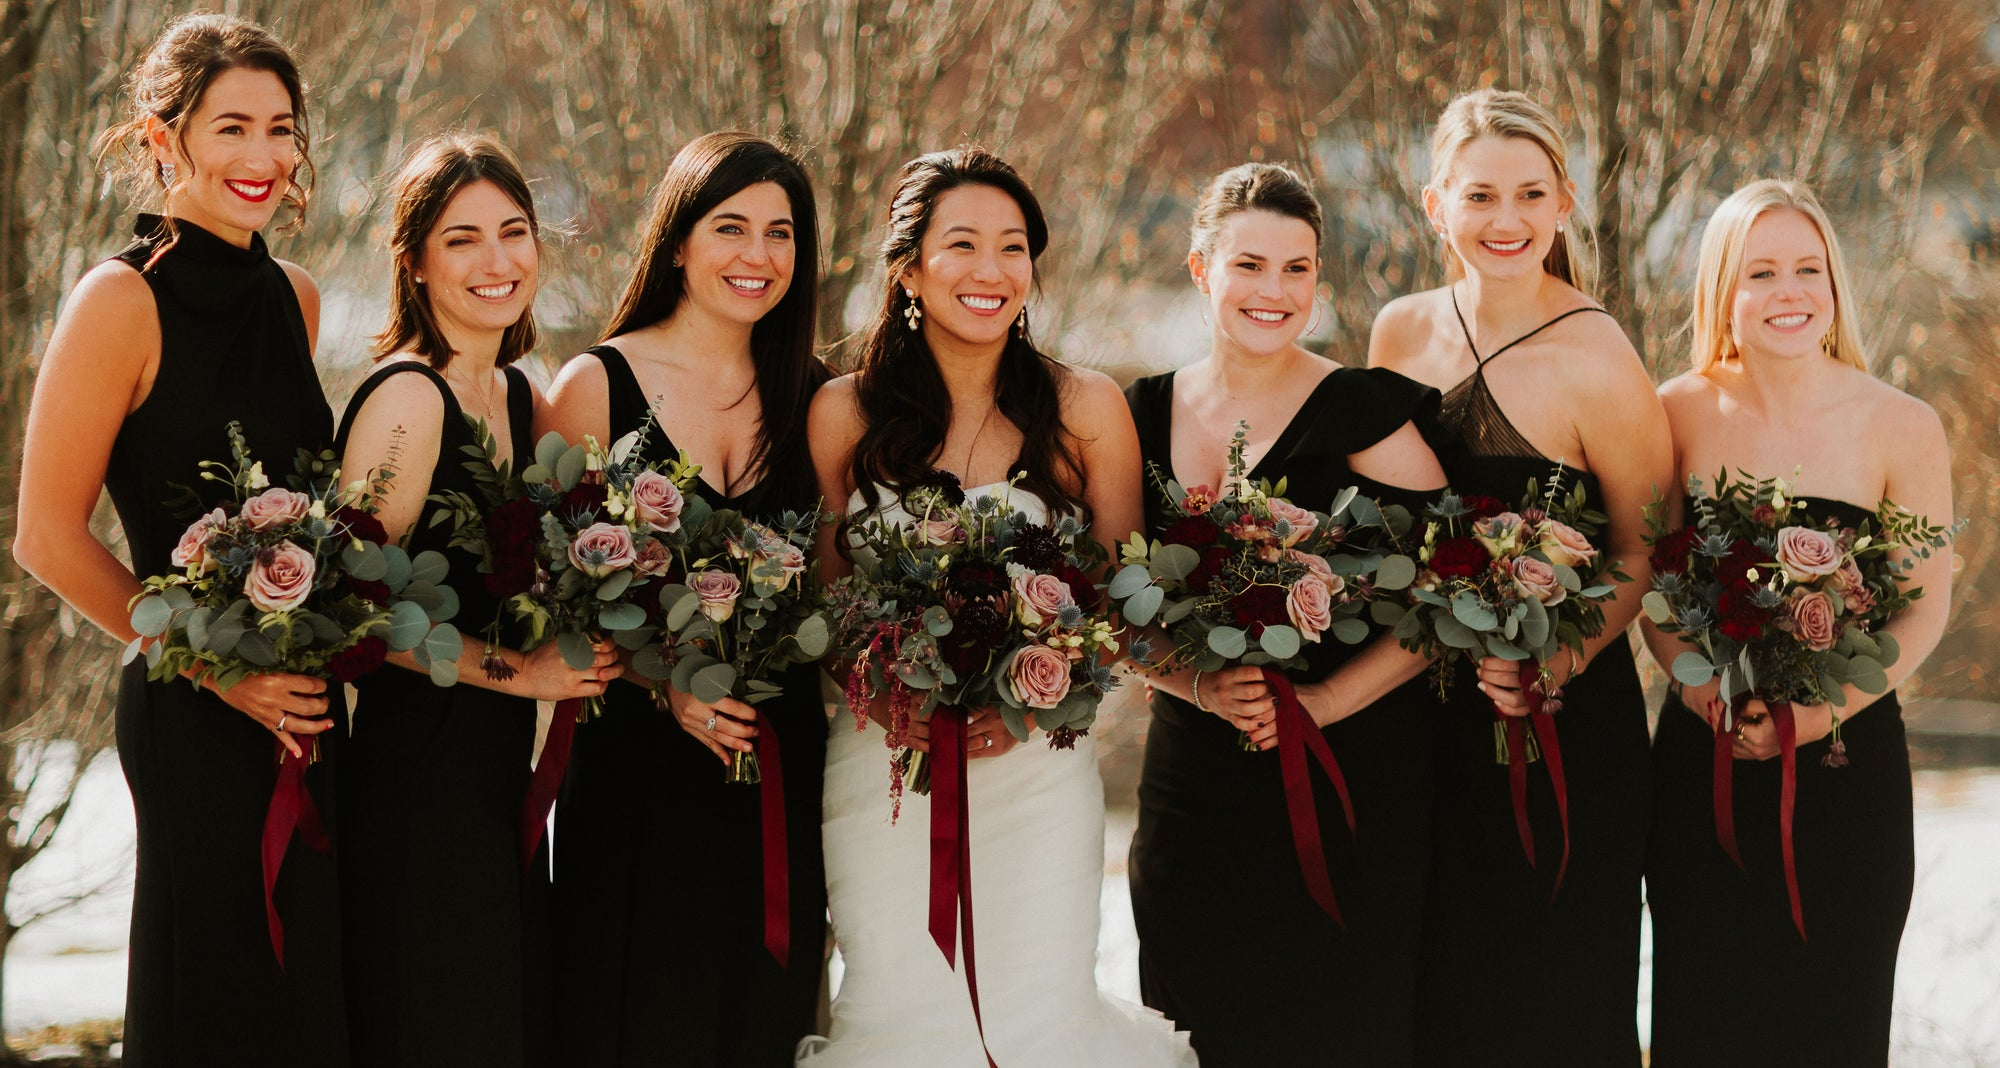 Winter Wedding at The Roundhouse in Beacon, NY in the Hudson Valley. Burgundy and blush bridal bouquet.